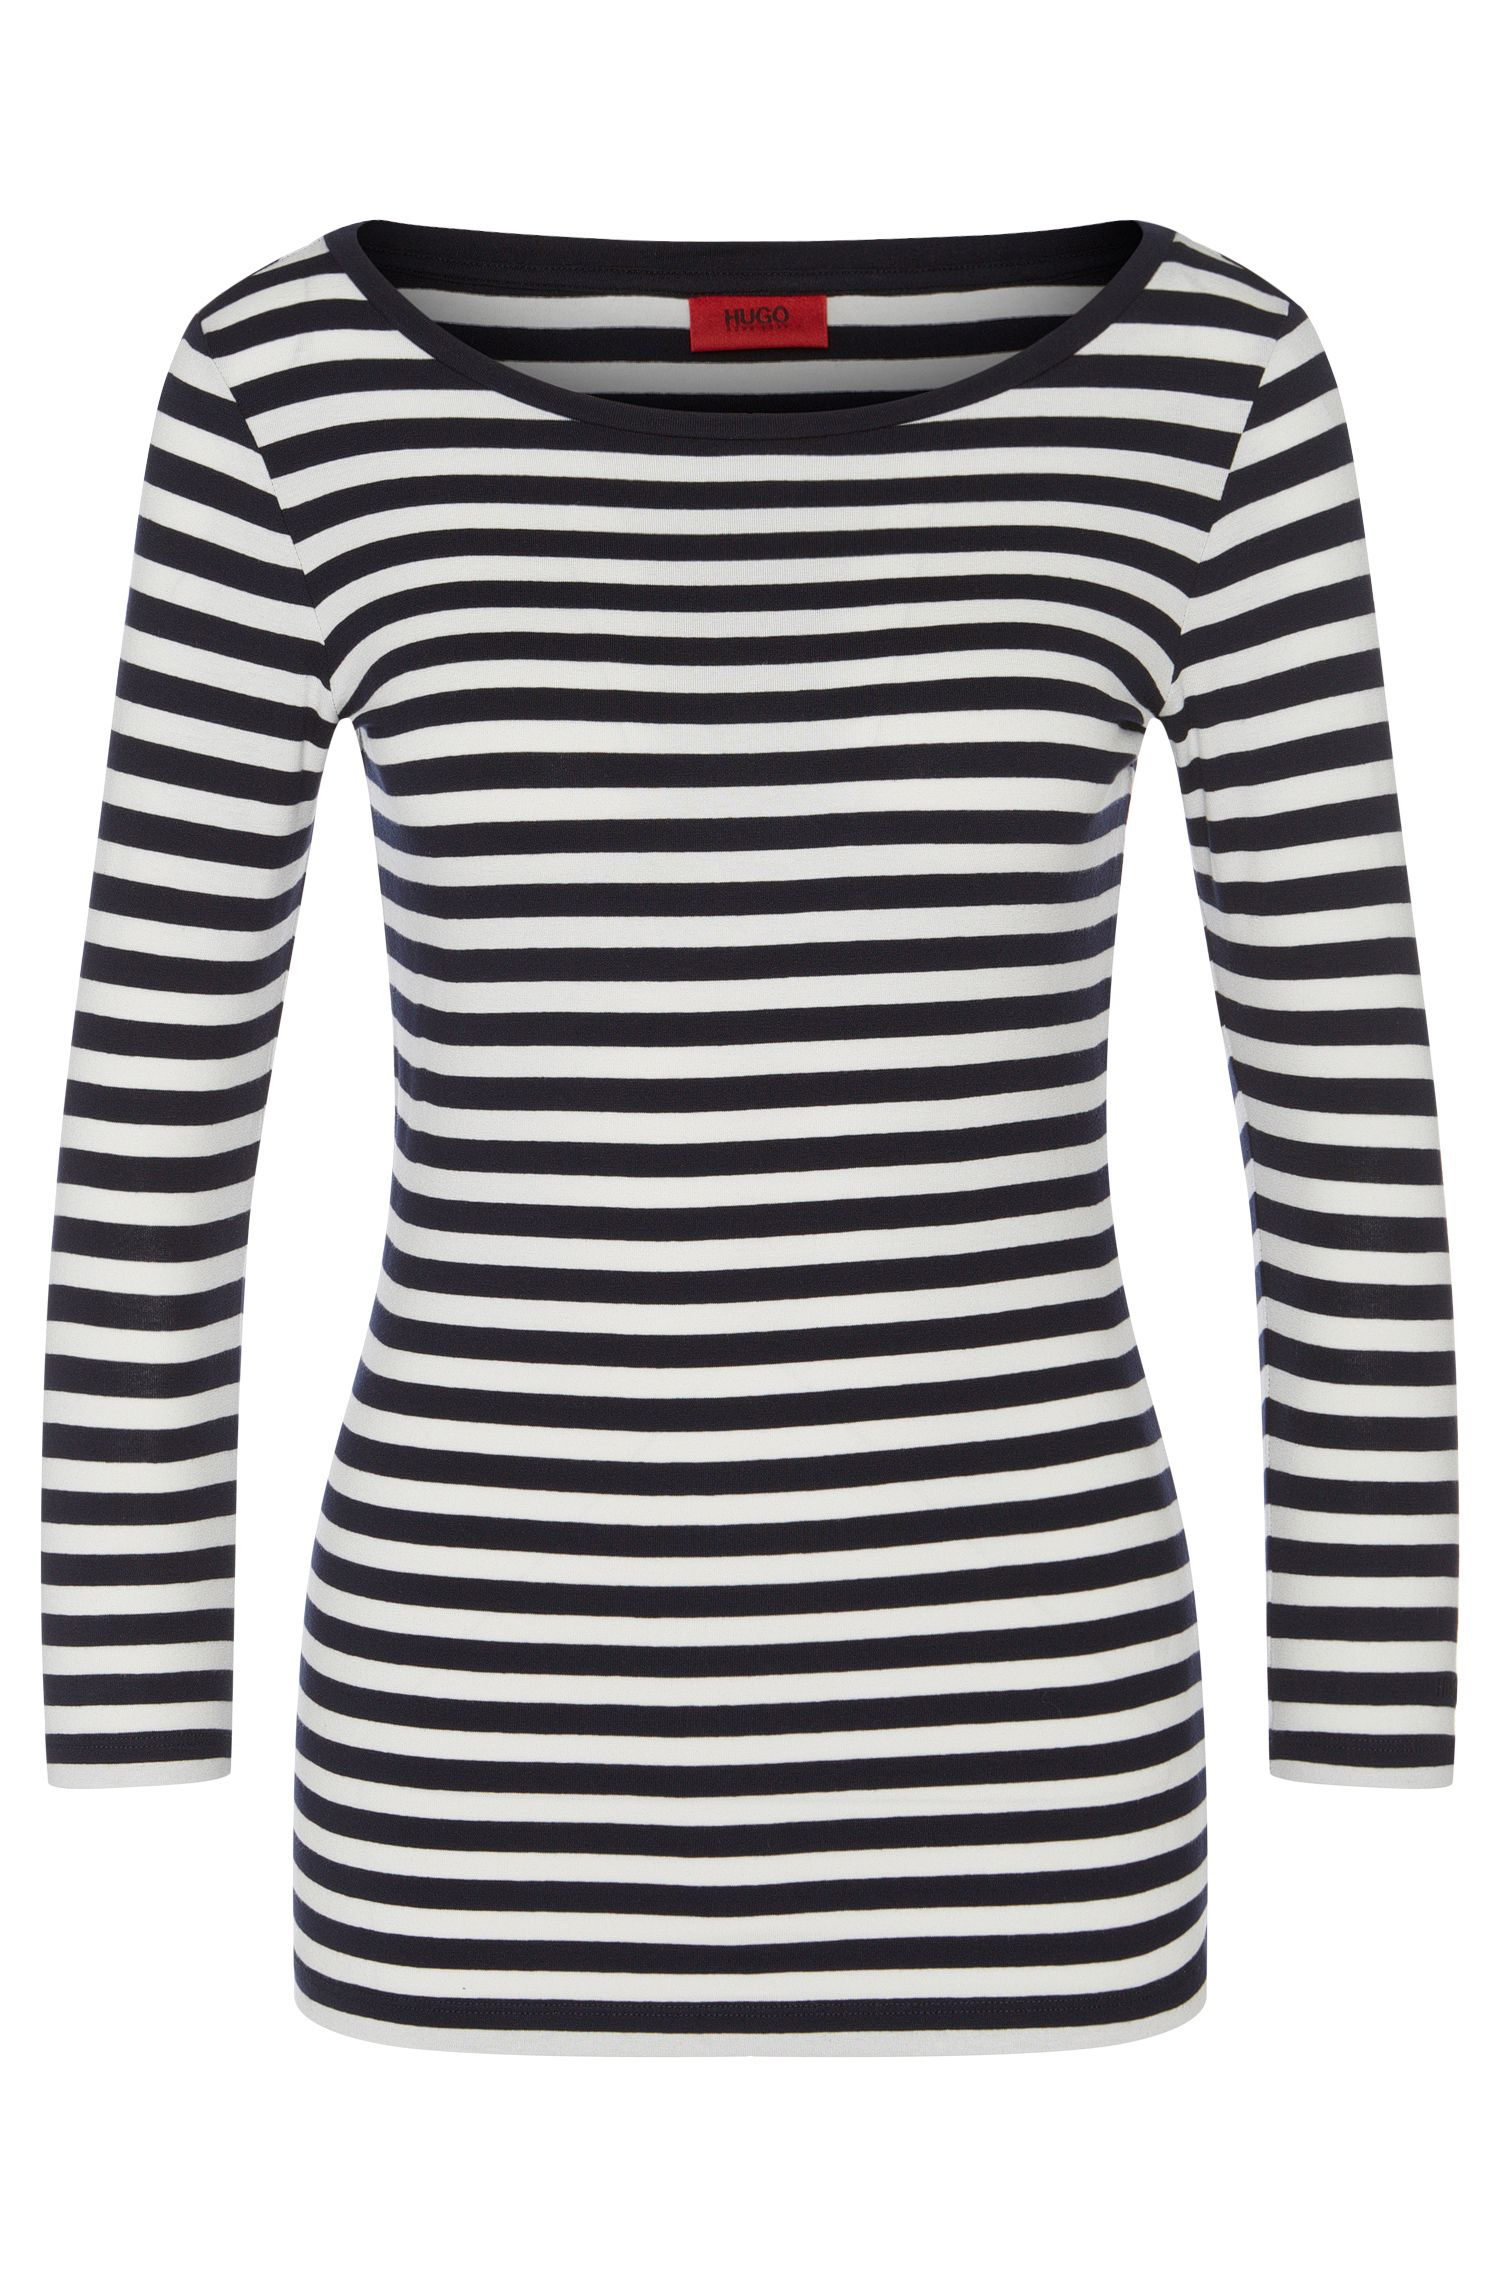 Slim-fit jersey t-shirt with stripes and a bateau neckline from HUGO Woman